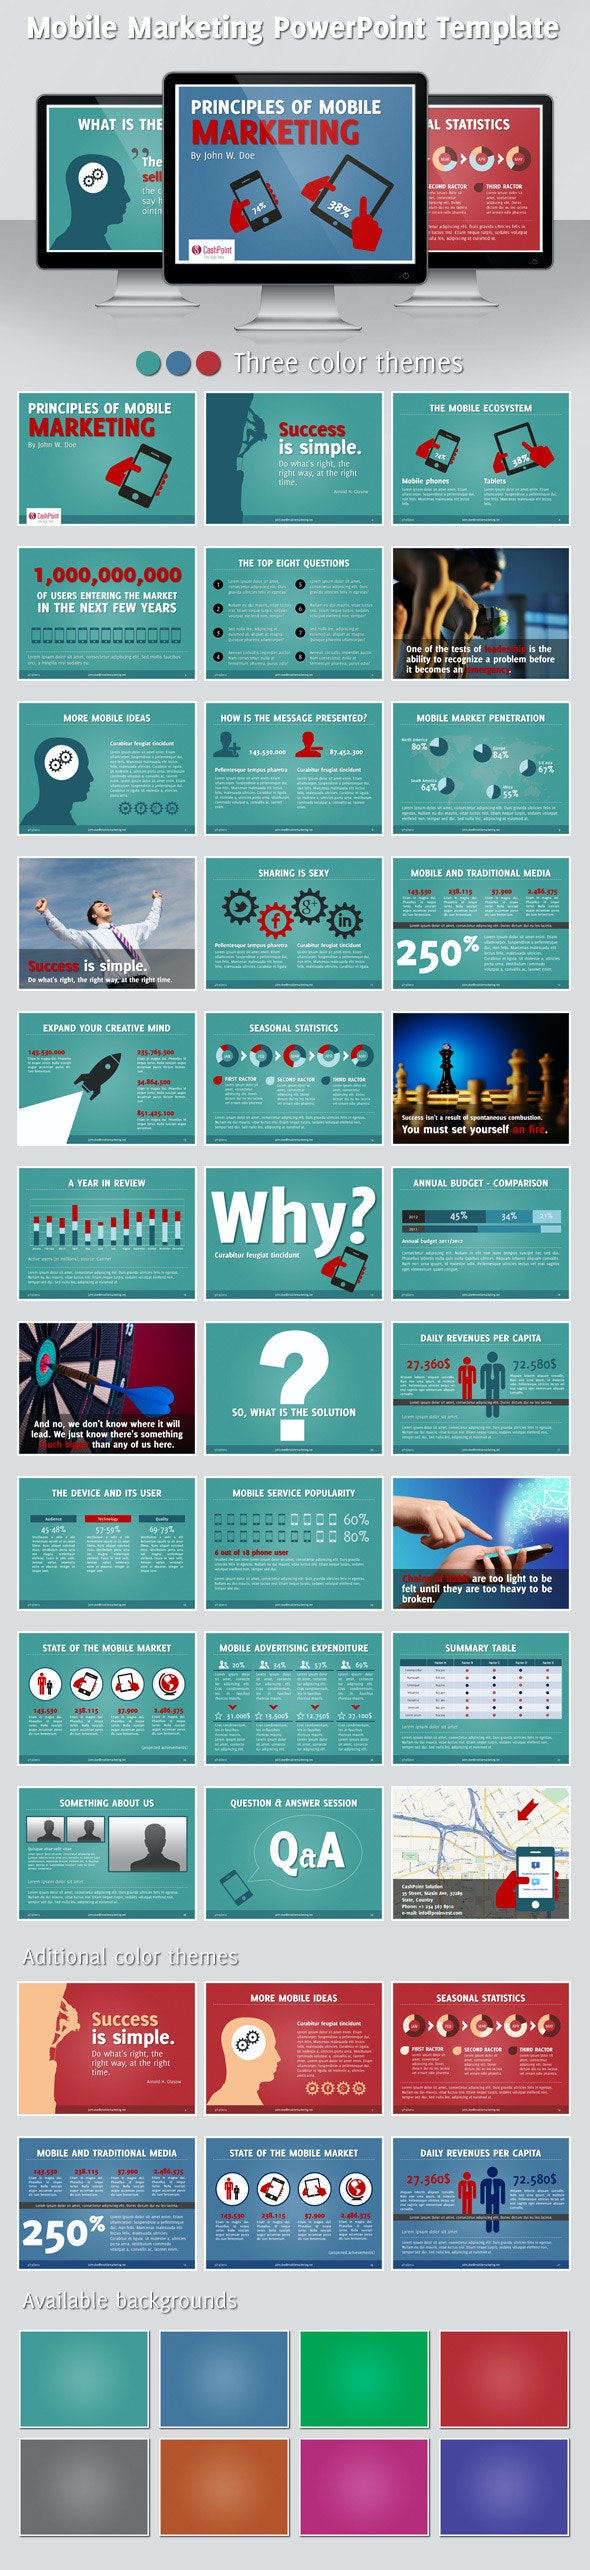 Mobile Marketing PowerPoint Template - PowerPoint Templates Presentation Templates